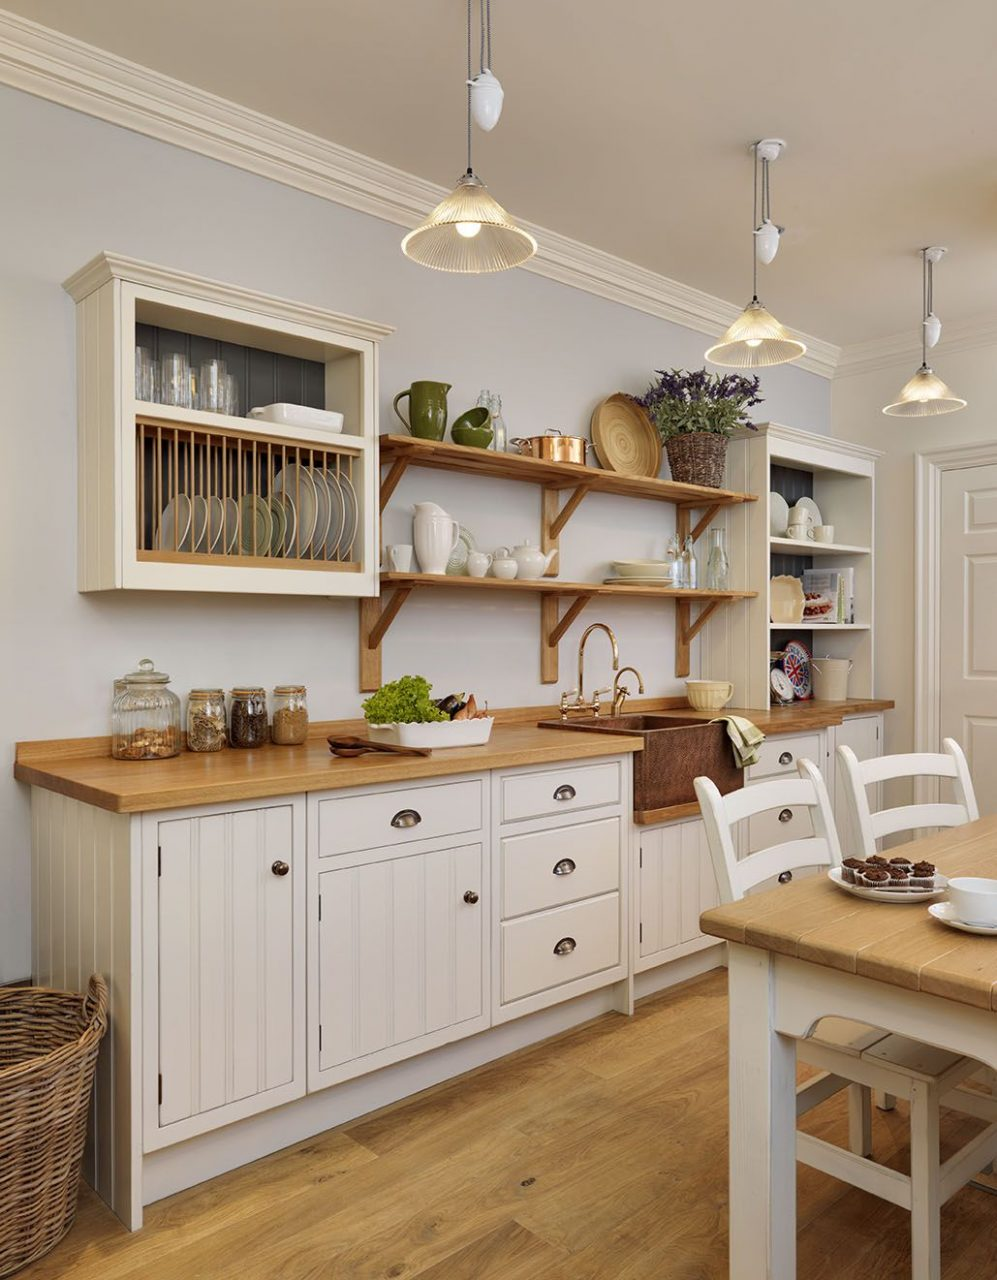 English Cottage Kitchen Rustic Painted White With A Copper Sink